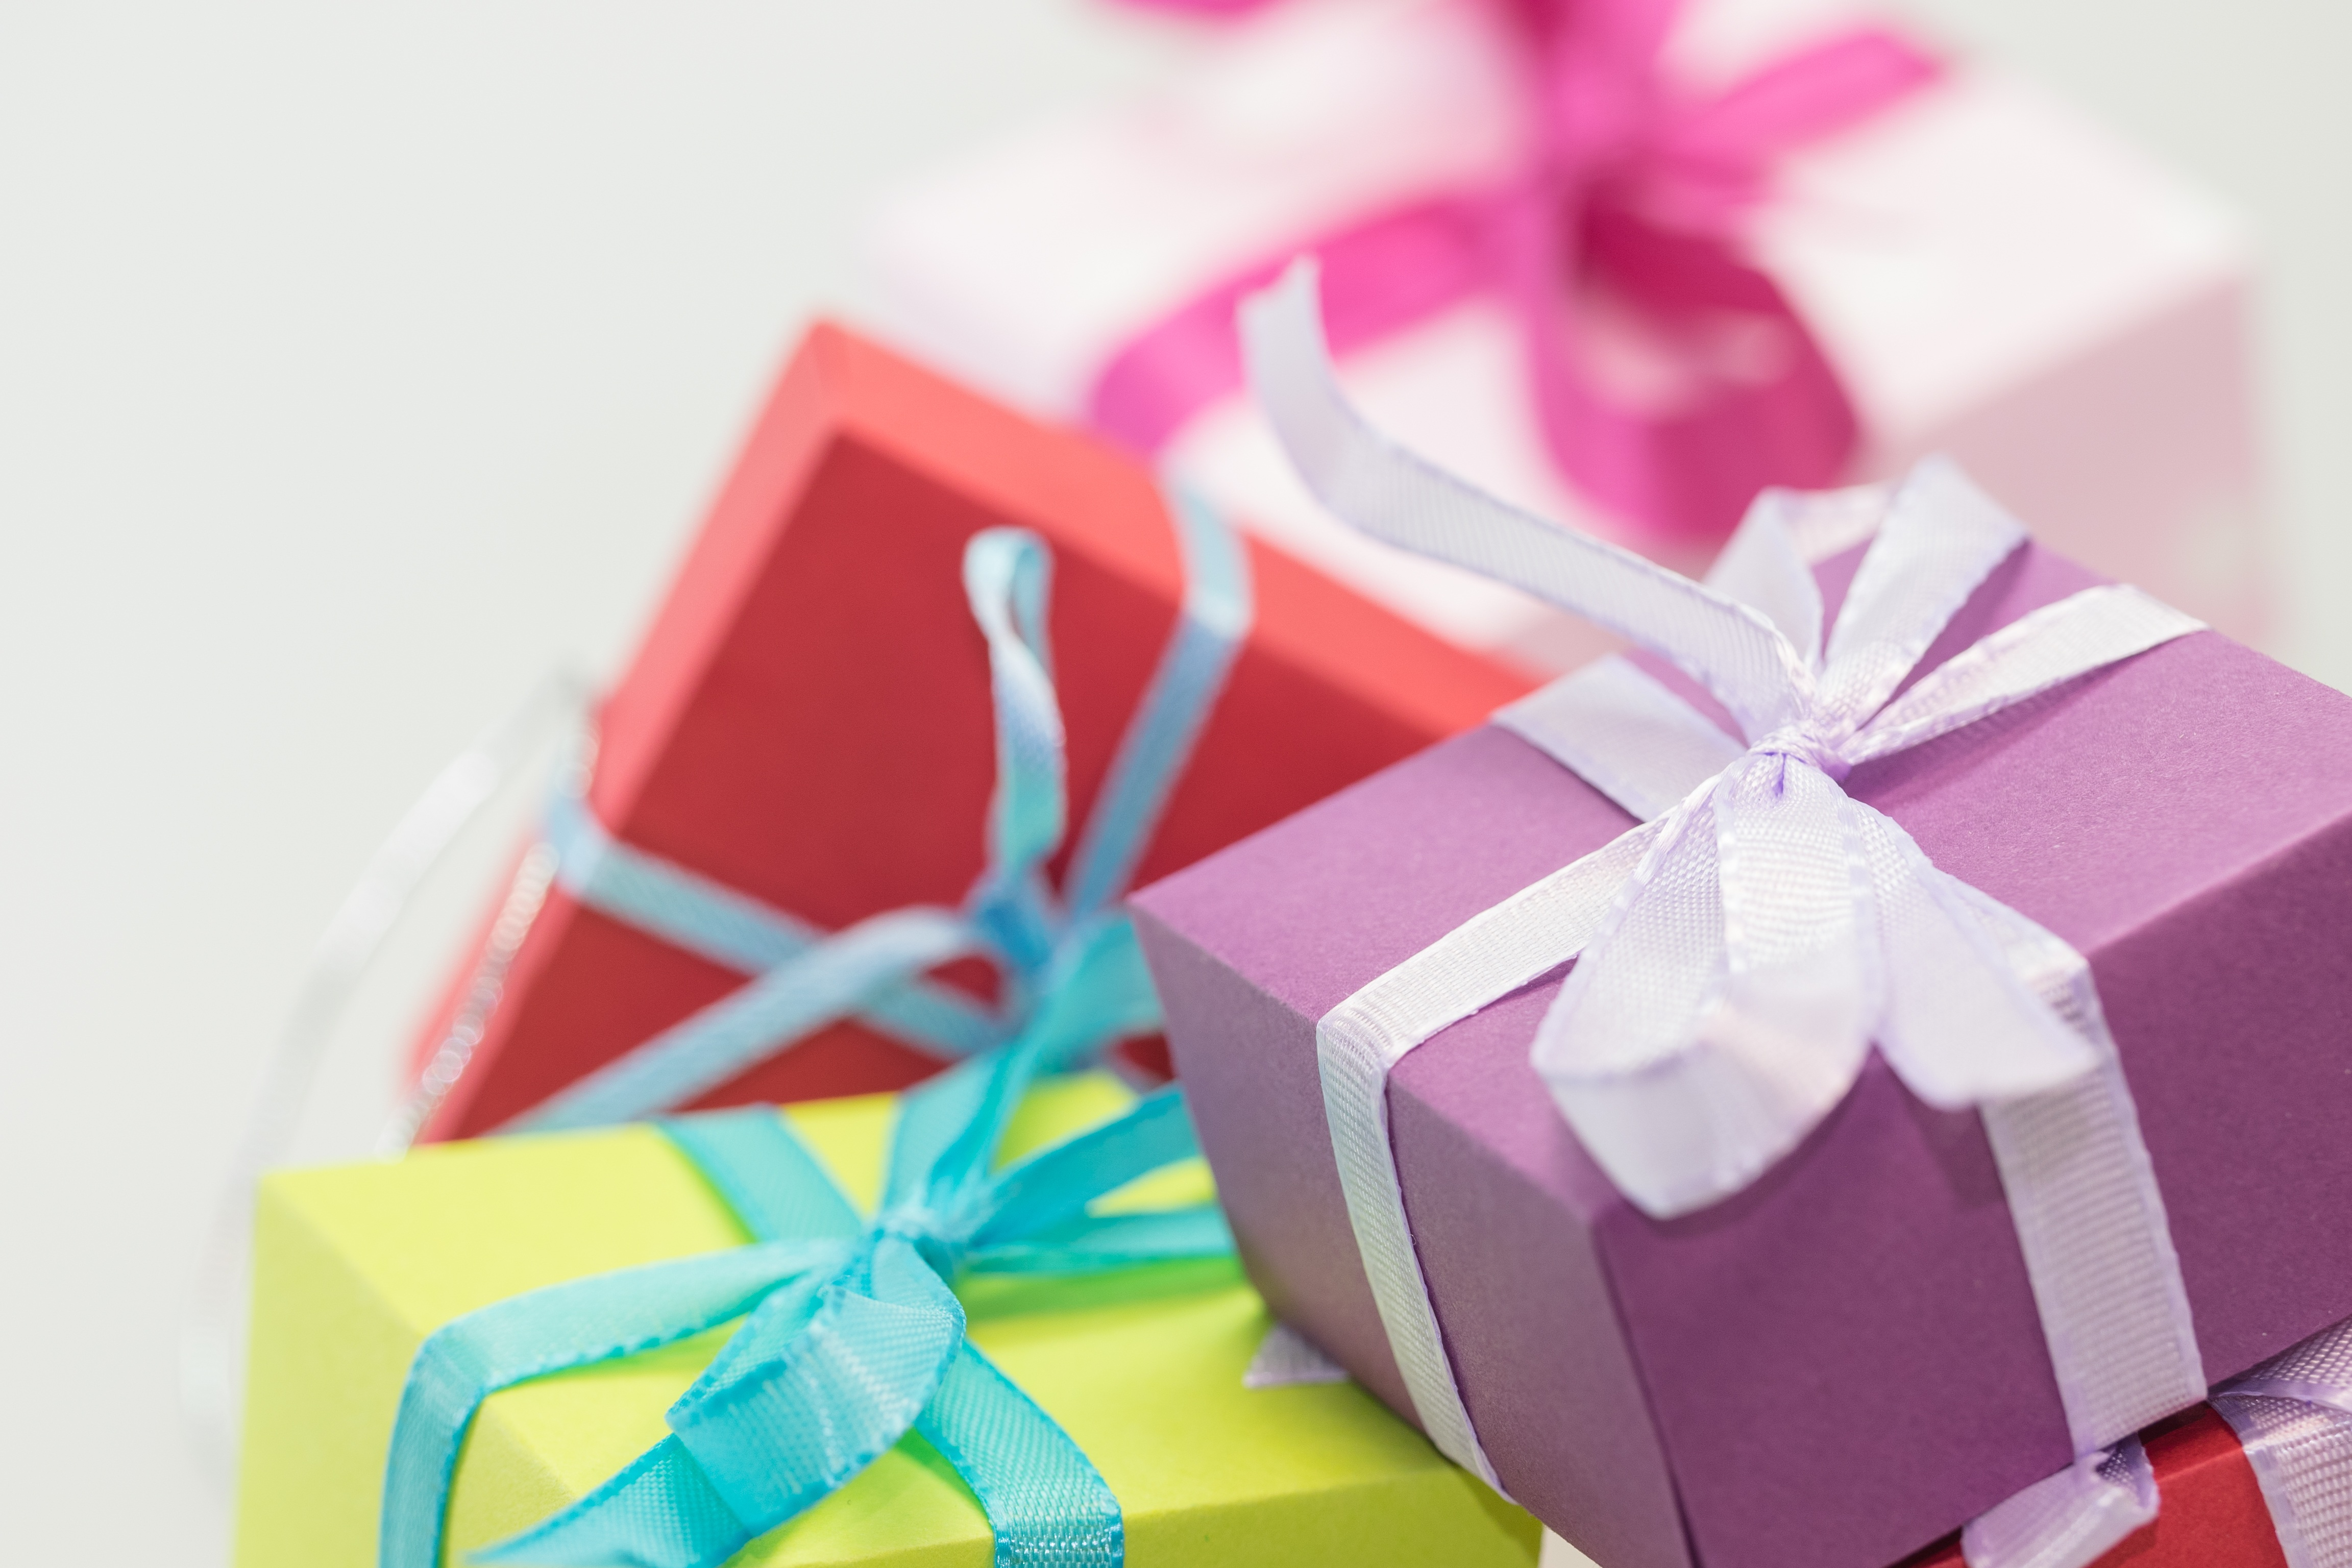 Free stock photo of birthday christmas gift free download negle Image collections